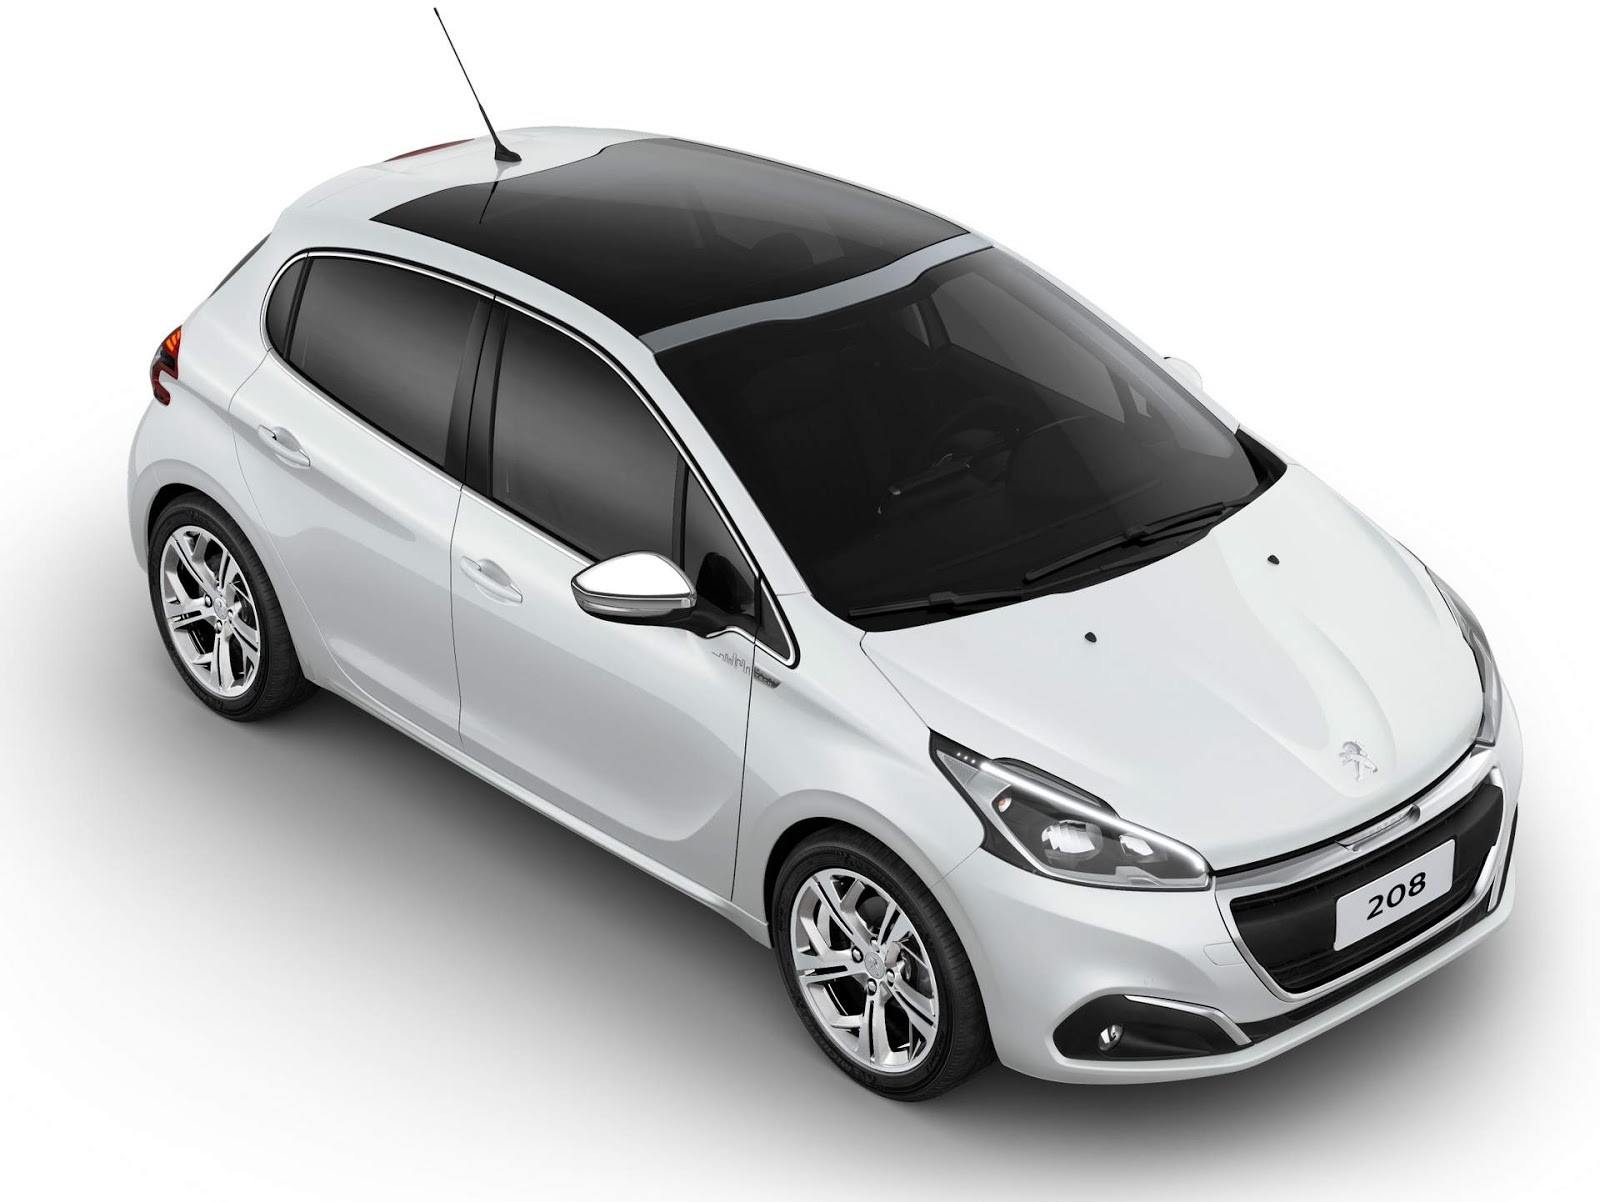 peugeot 208 autom tico urbantech fotos pre o e detalhes car blog br. Black Bedroom Furniture Sets. Home Design Ideas